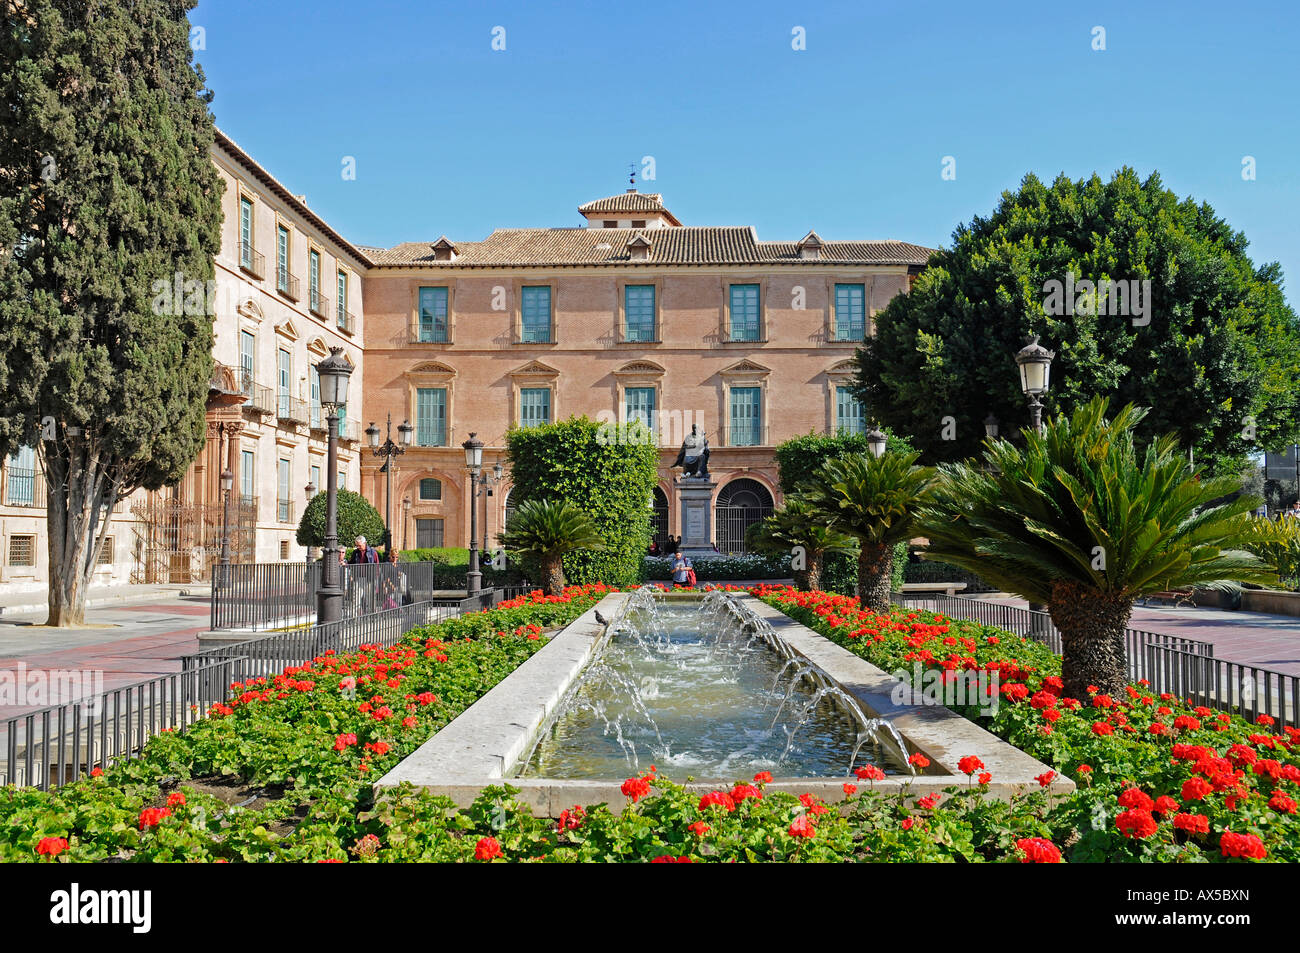 Episcopal Palace, Glorieta de Espana, Murcia, Spain, Europe - Stock Image